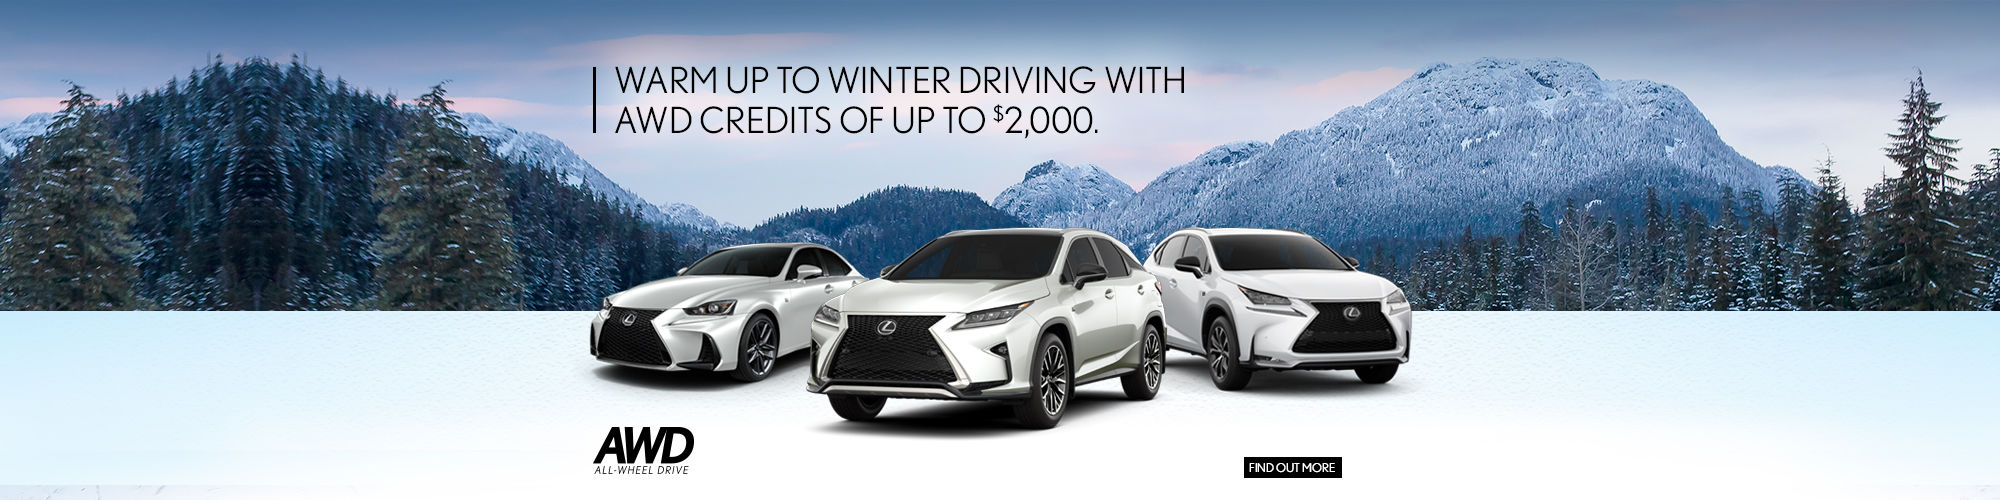 Warm up to winter driving with AWD - Spinelli Lexus